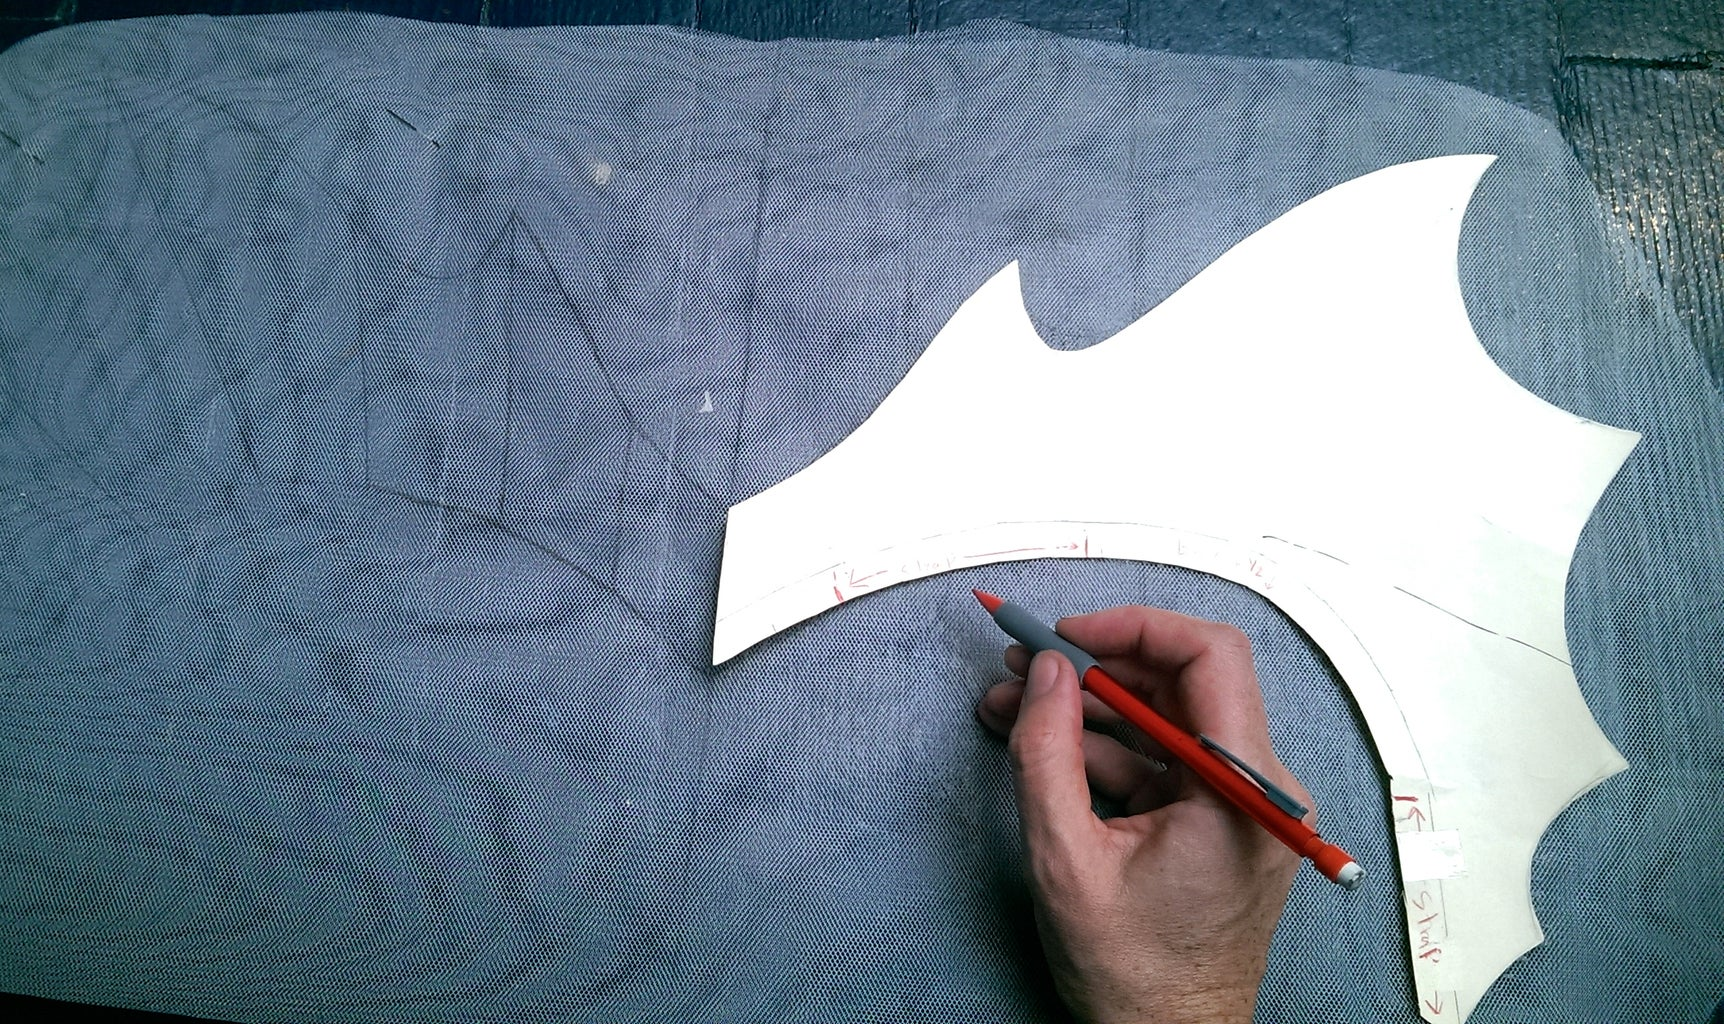 Sewing the Fins